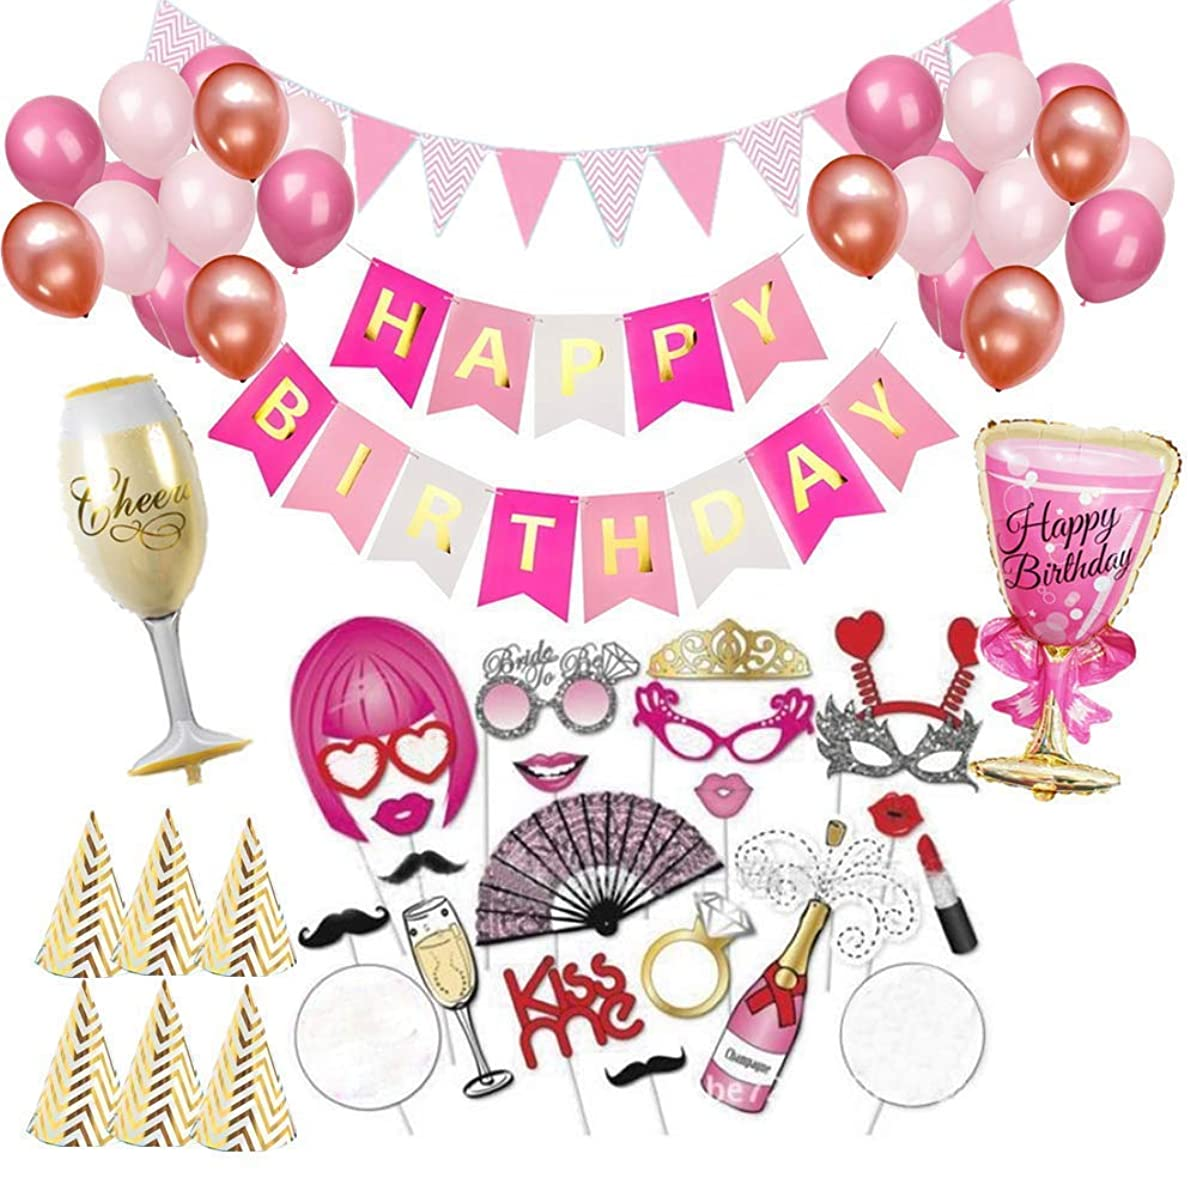 LEWOTE Happy Birthday Party Decoration Kit[75 Pcs][Include Happy Birthday Banner/Latex Balloons/Party Hats/Champagne Wine Balloons/Birthday Props for Photo Booth Stand]